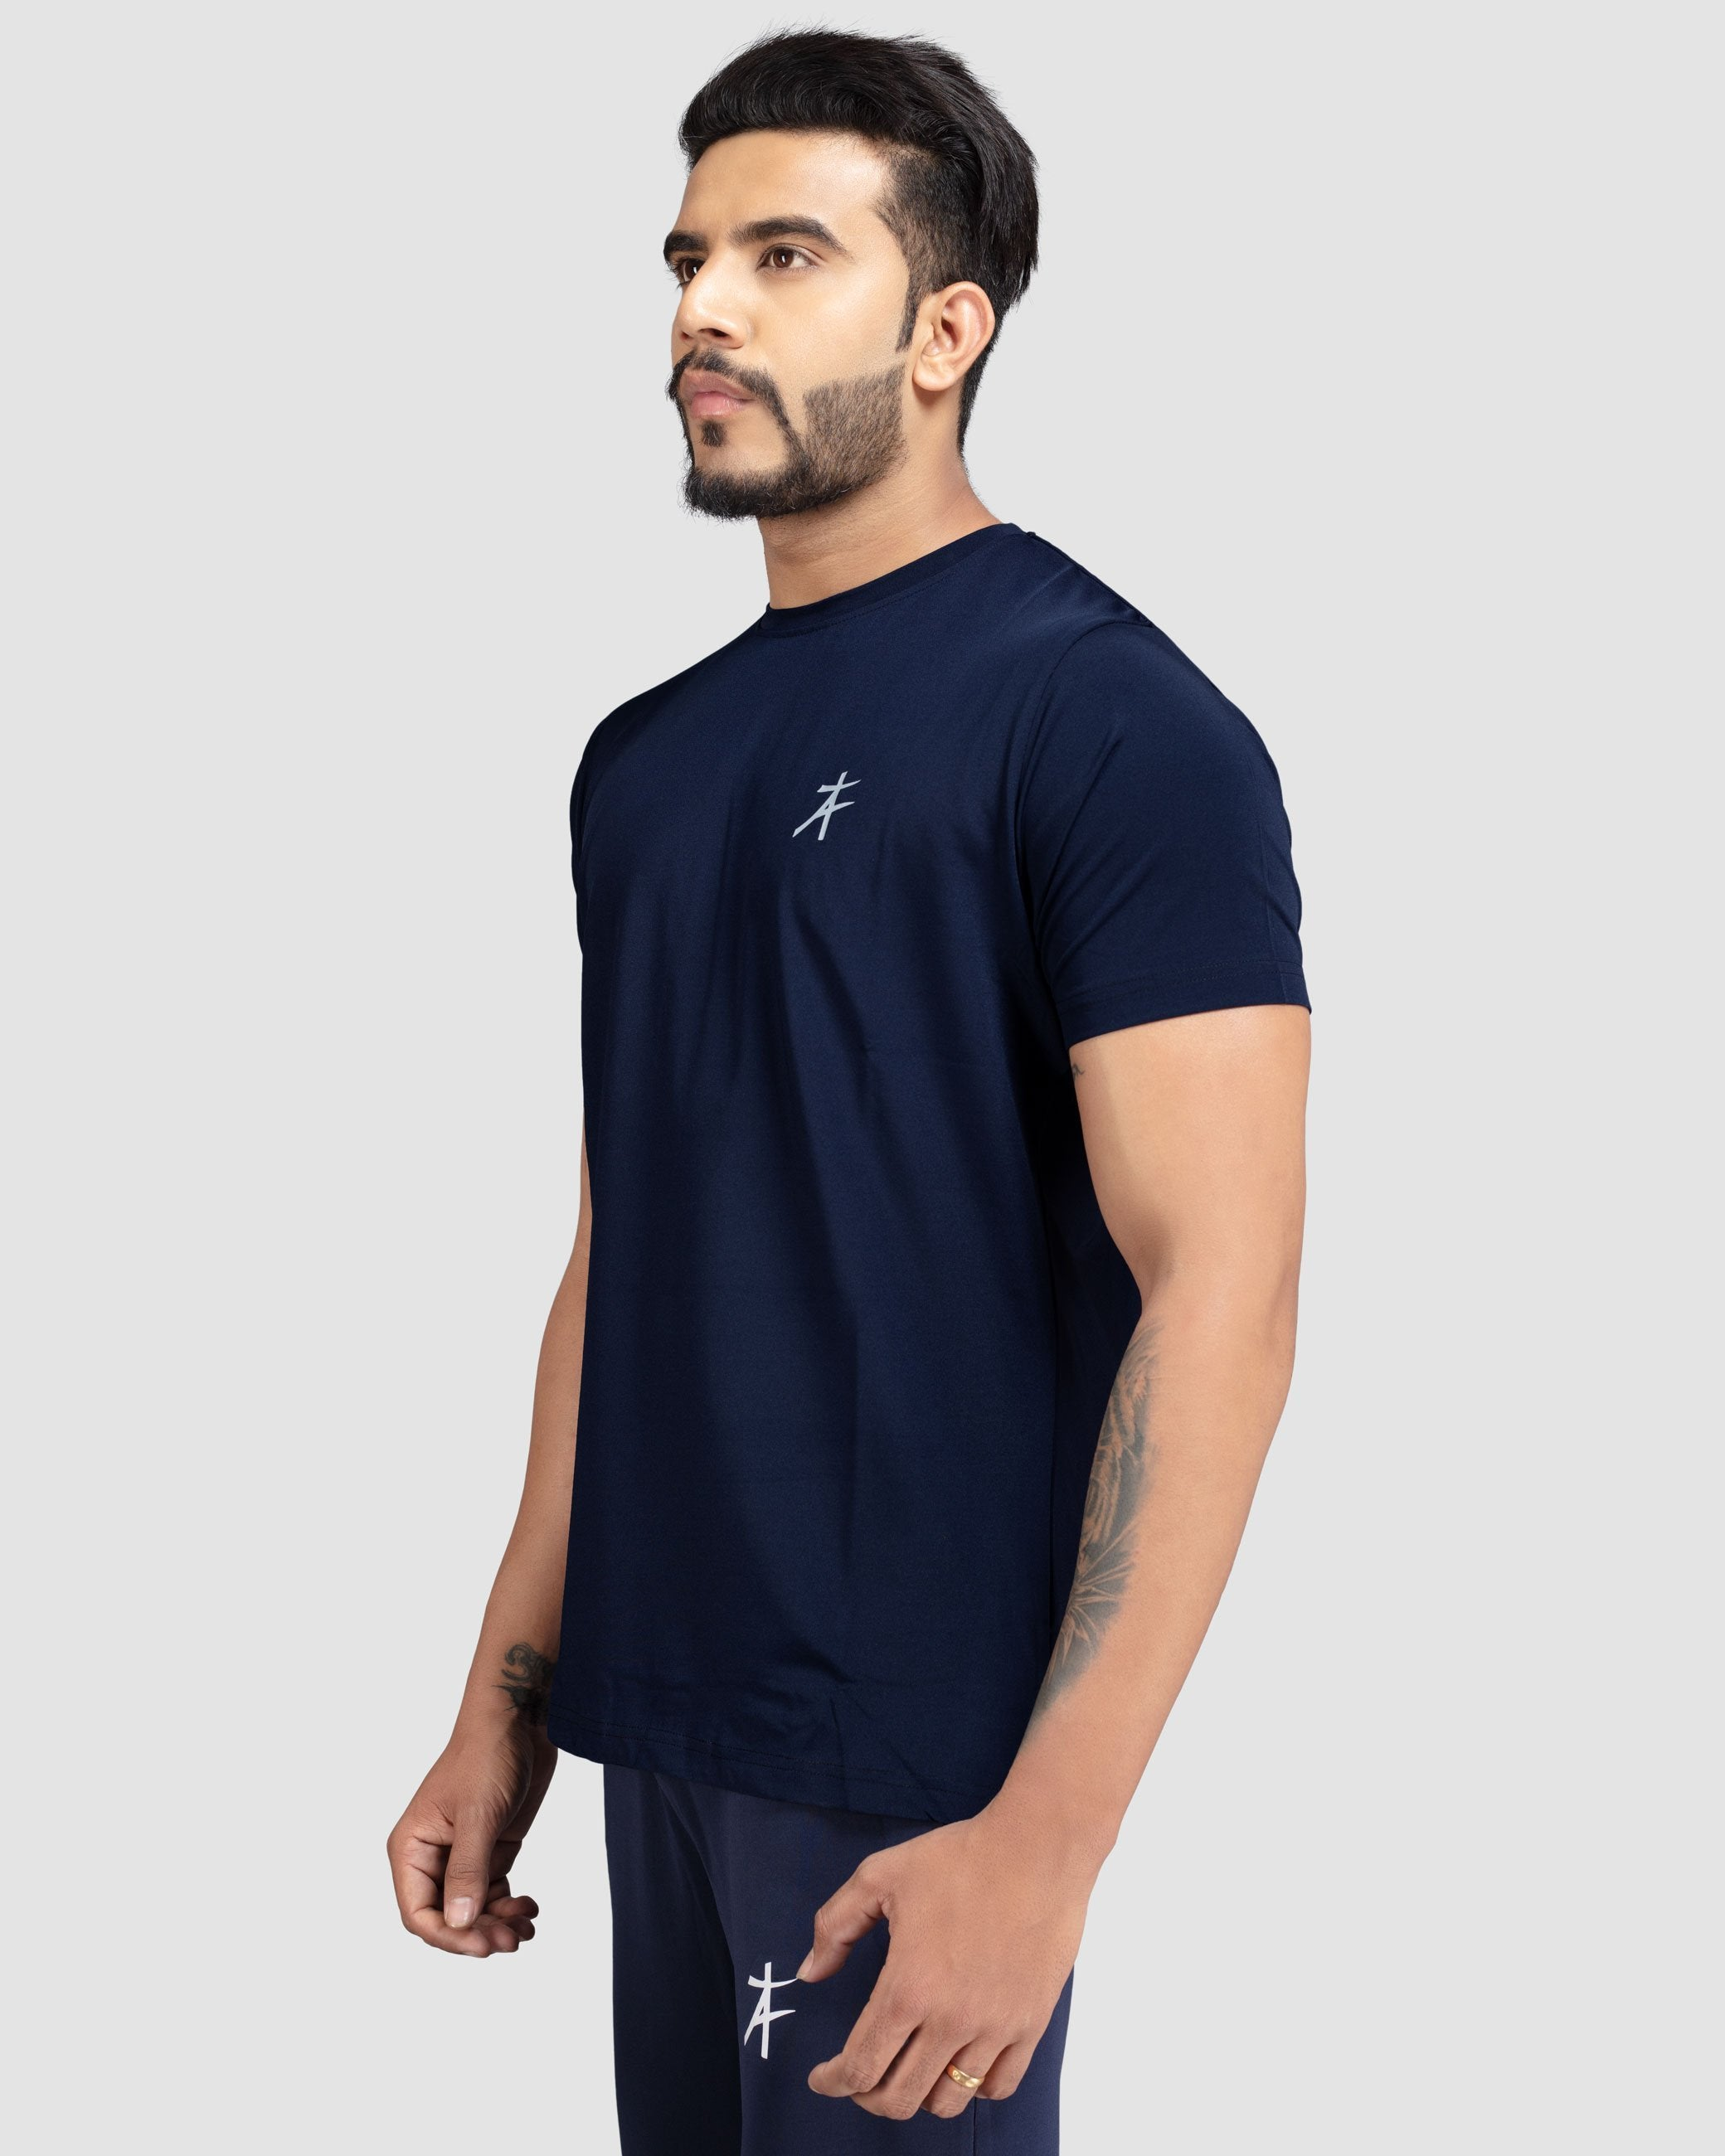 Flex Fit Swick T-Shirt(Navy Blue) Athflex